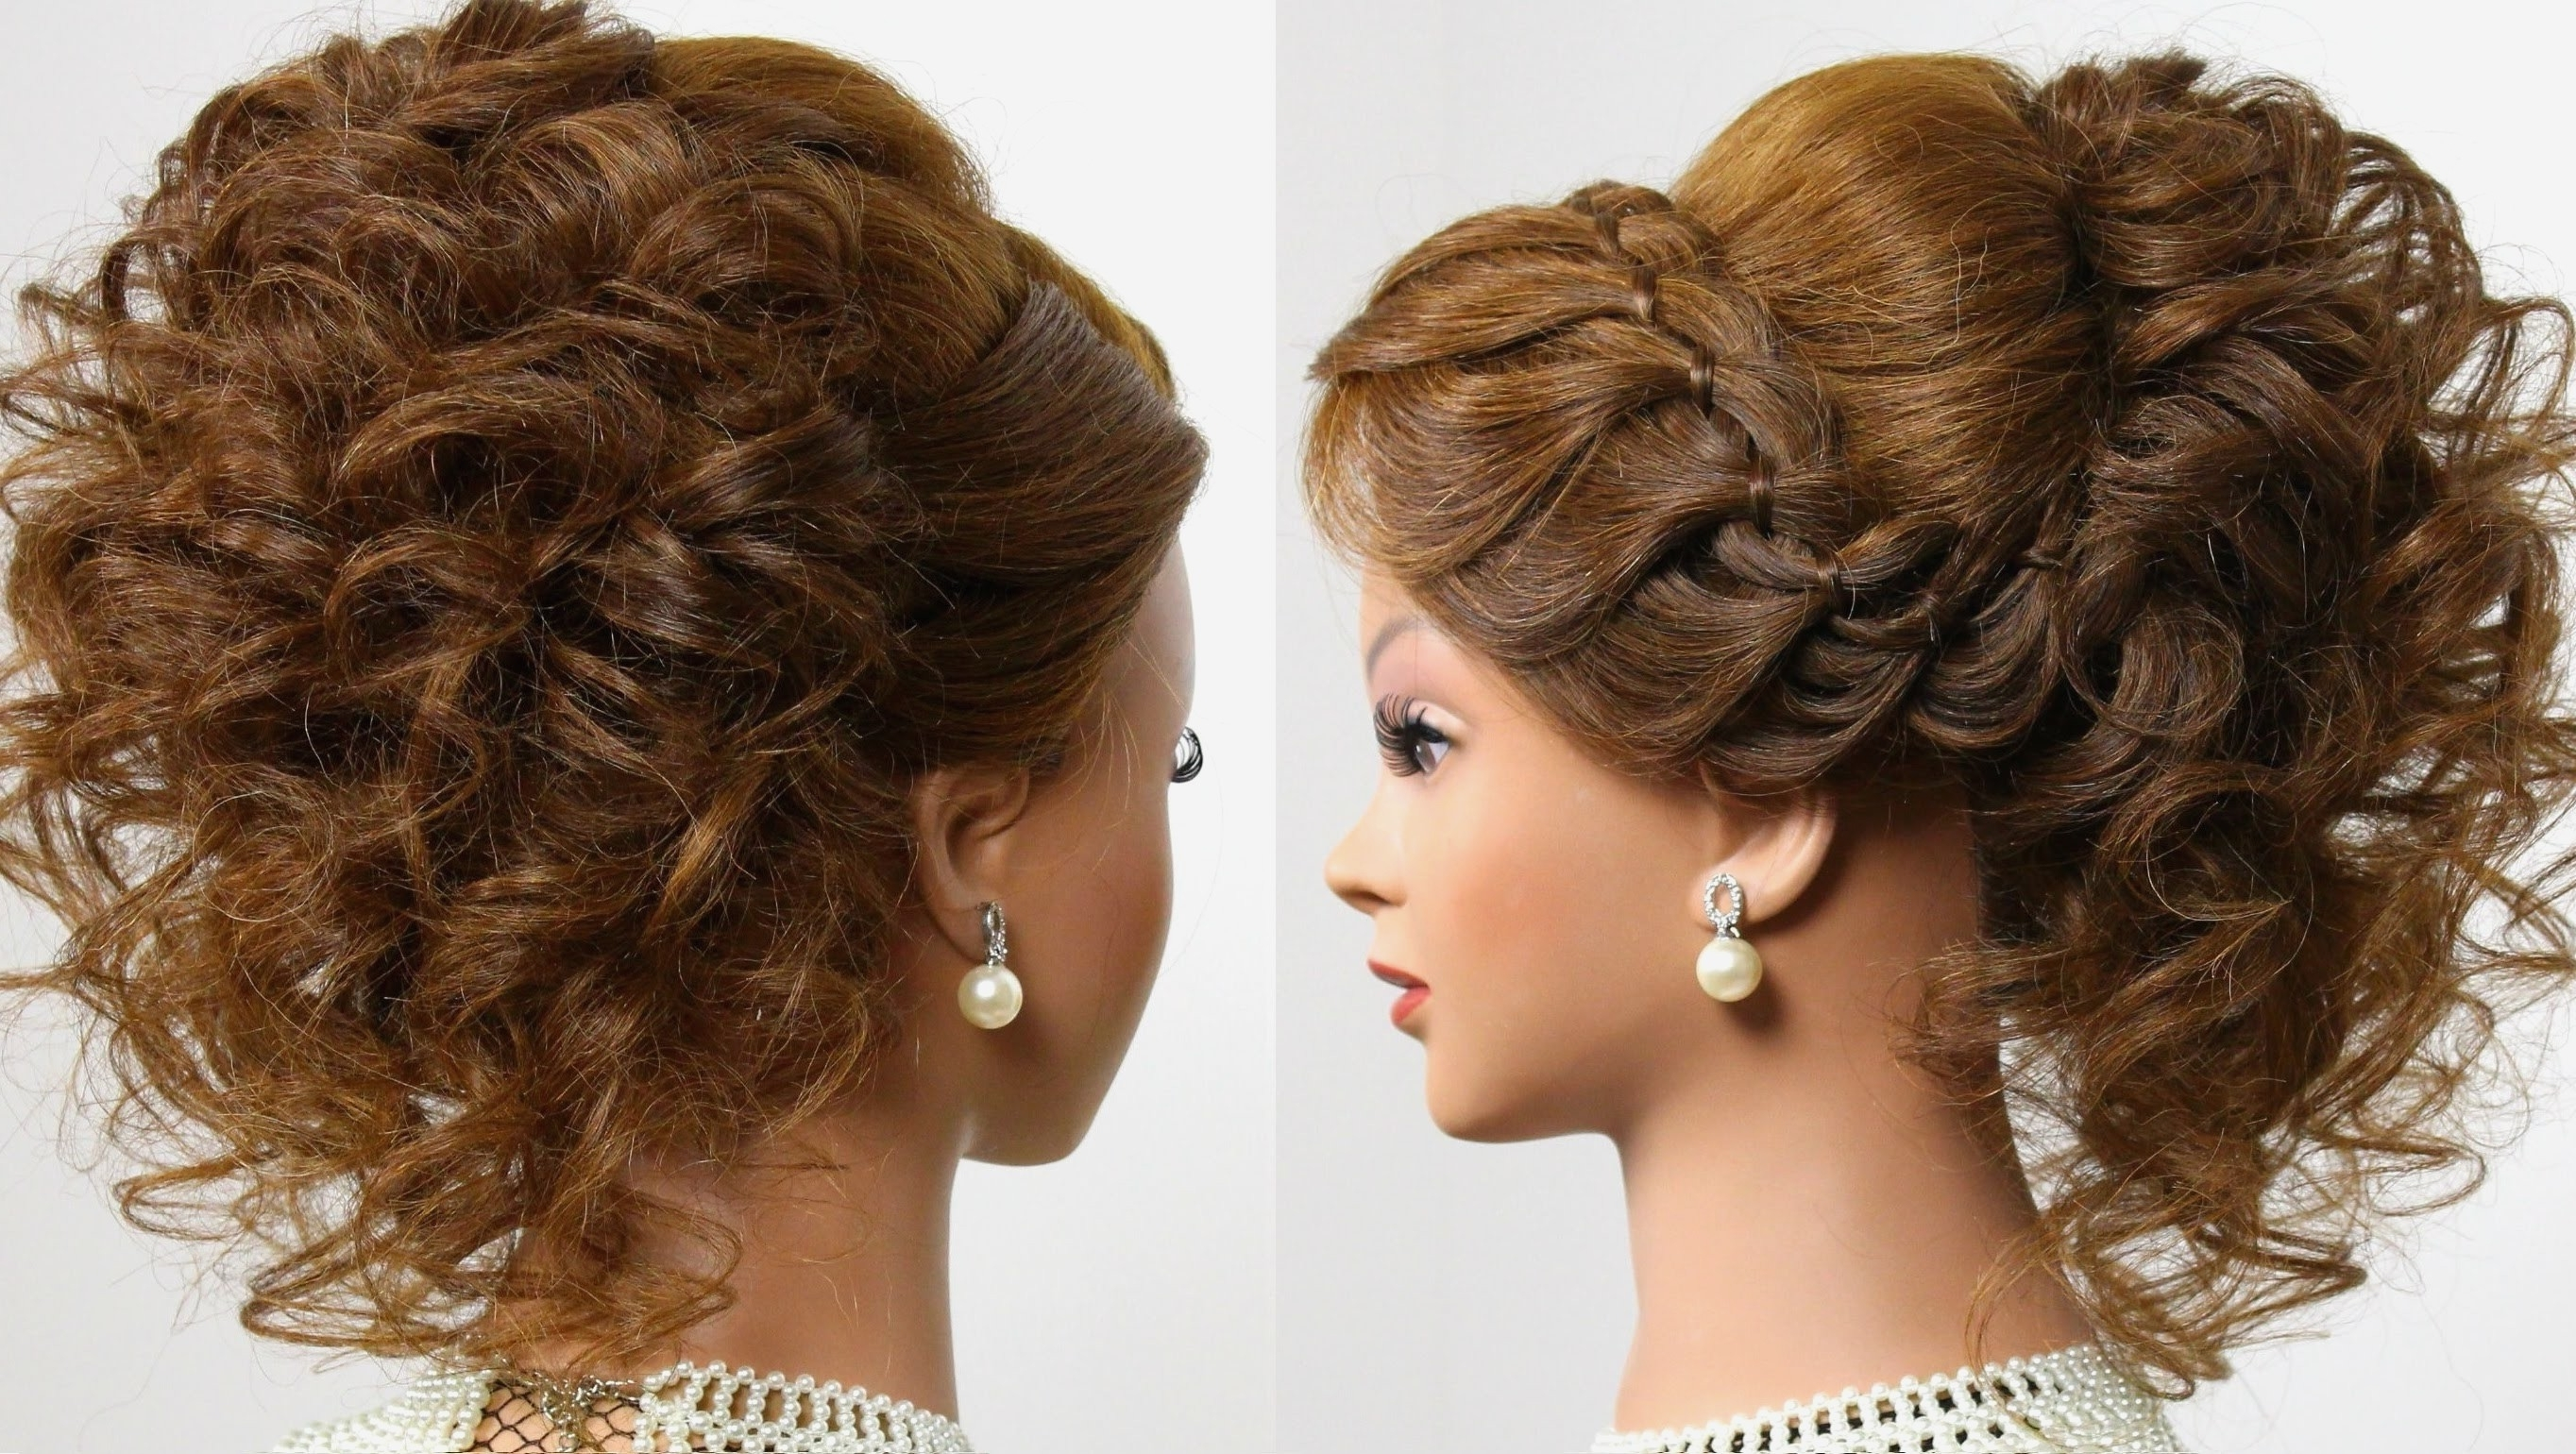 Unforgettable Weddingair Medium Length Ideas Indian Guestairstyles In Popular Wedding Hairstyles For Shoulder Length Thick Hair (Gallery 12 of 15)